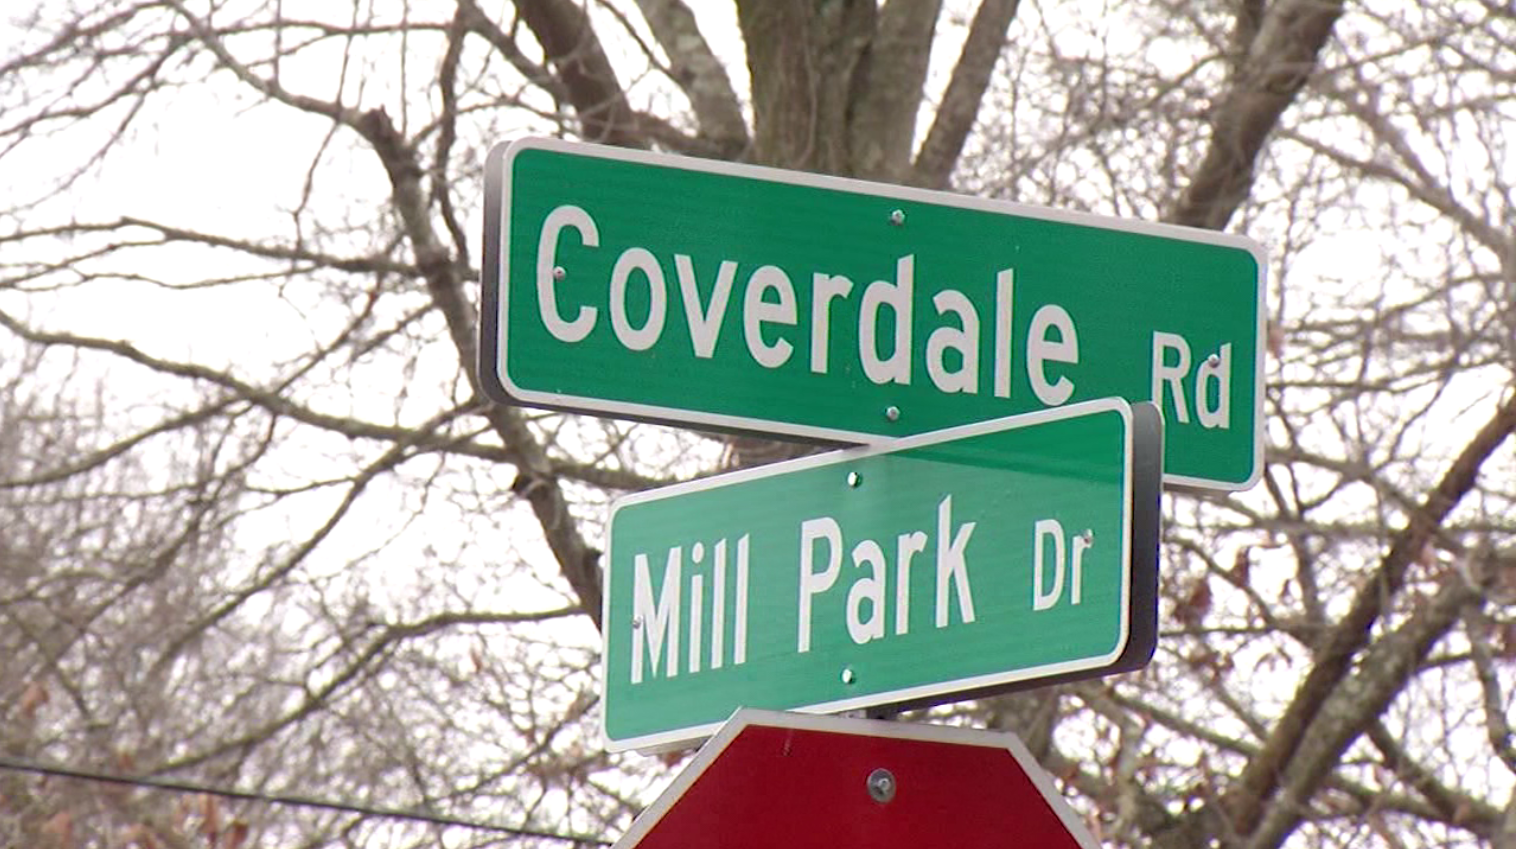 94 arrests made in Coverdale Crossroads criminal investigation - 47abc